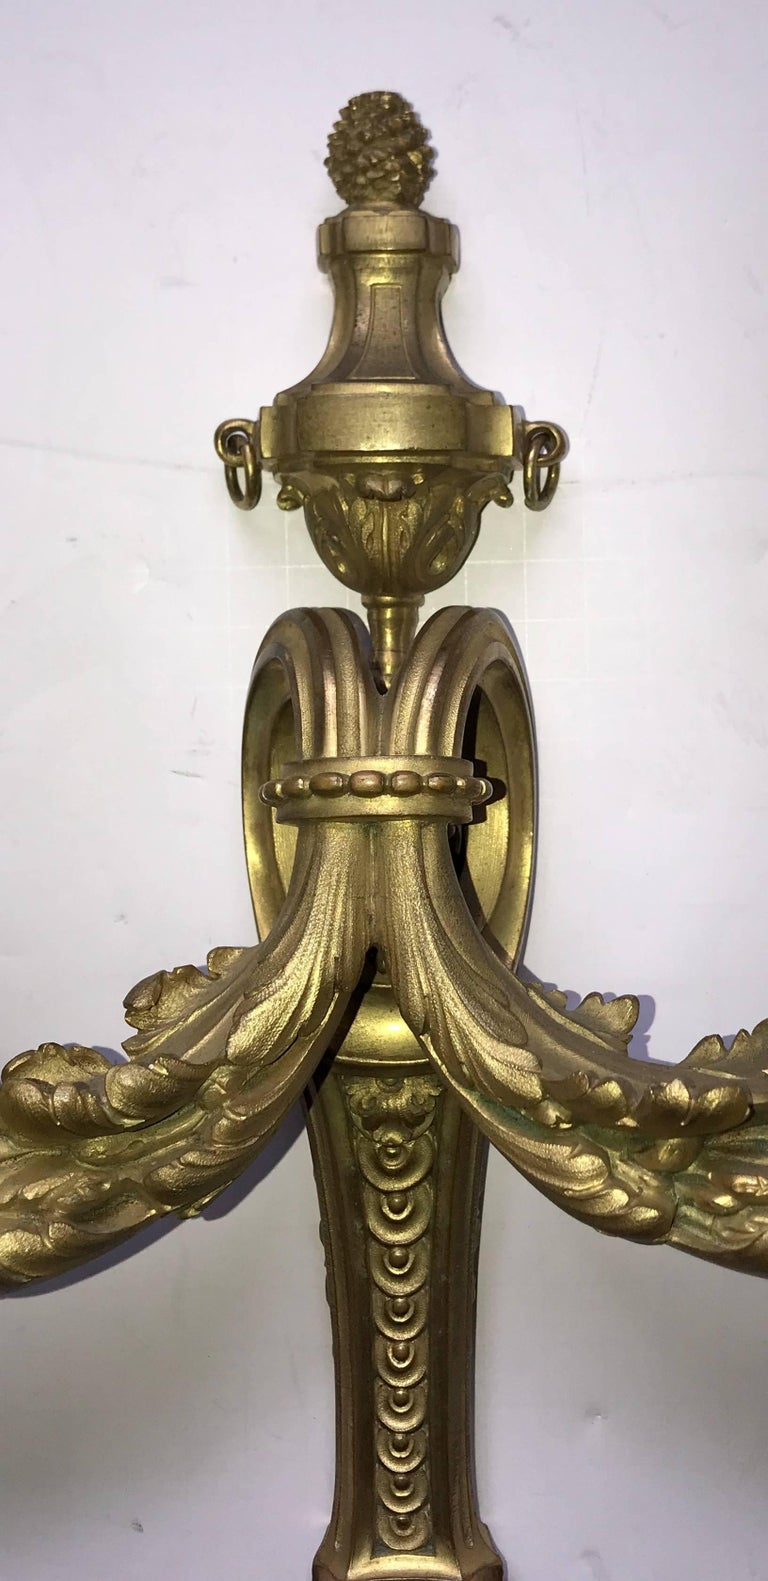 A wonderful pair of French bronze neoclassical / Regency urn top and filigree sconces in the manner of Caldwell, stamped made in France on the backs.